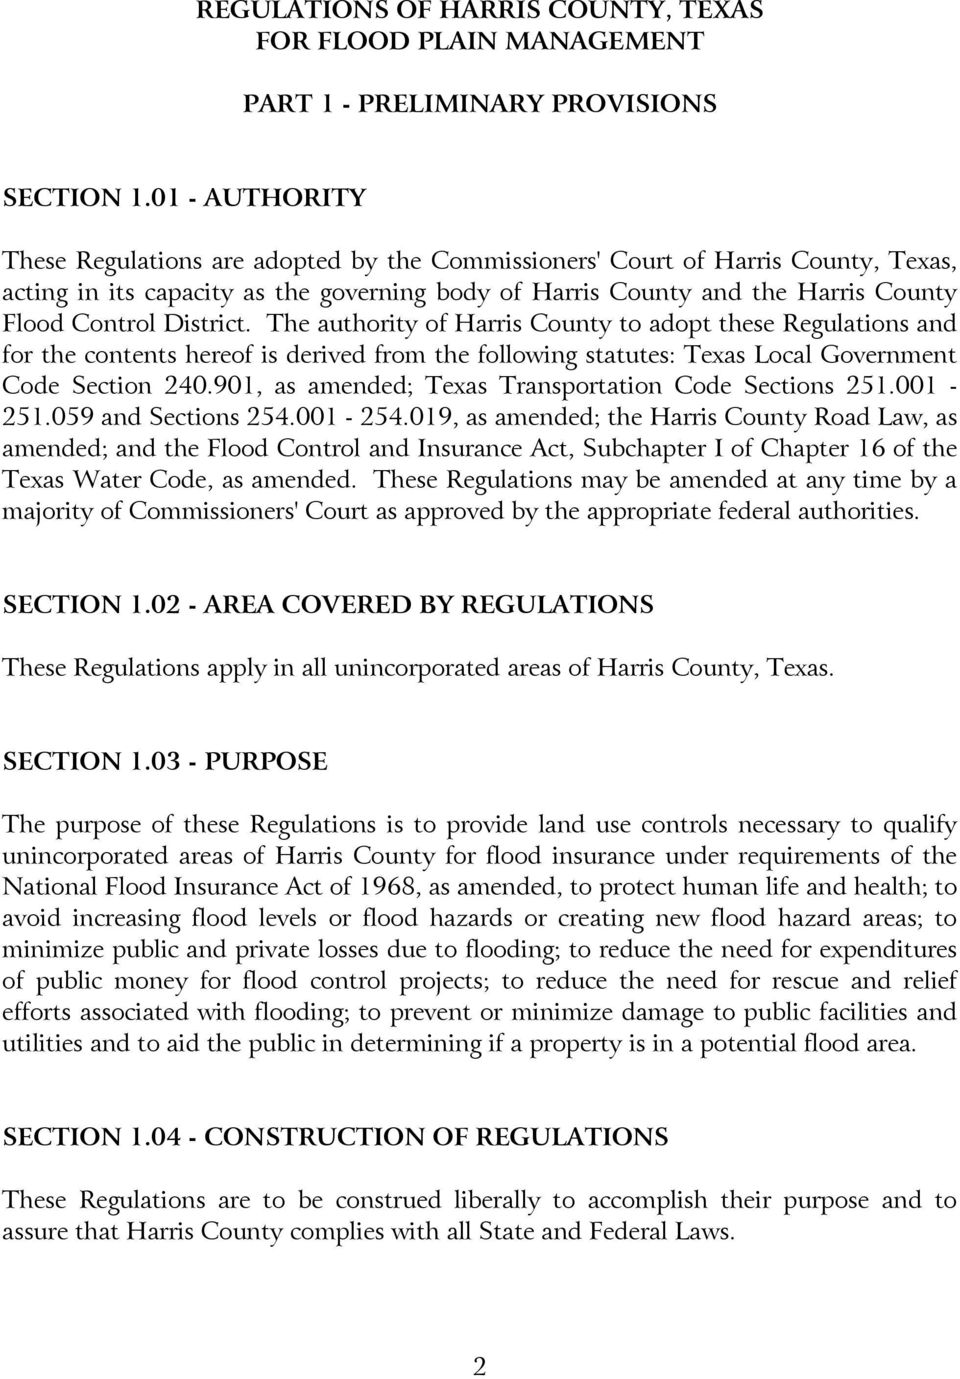 District. The authority of Harris County to adopt these Regulations and for the contents hereof is derived from the following statutes: Texas Local Government Code Section 240.